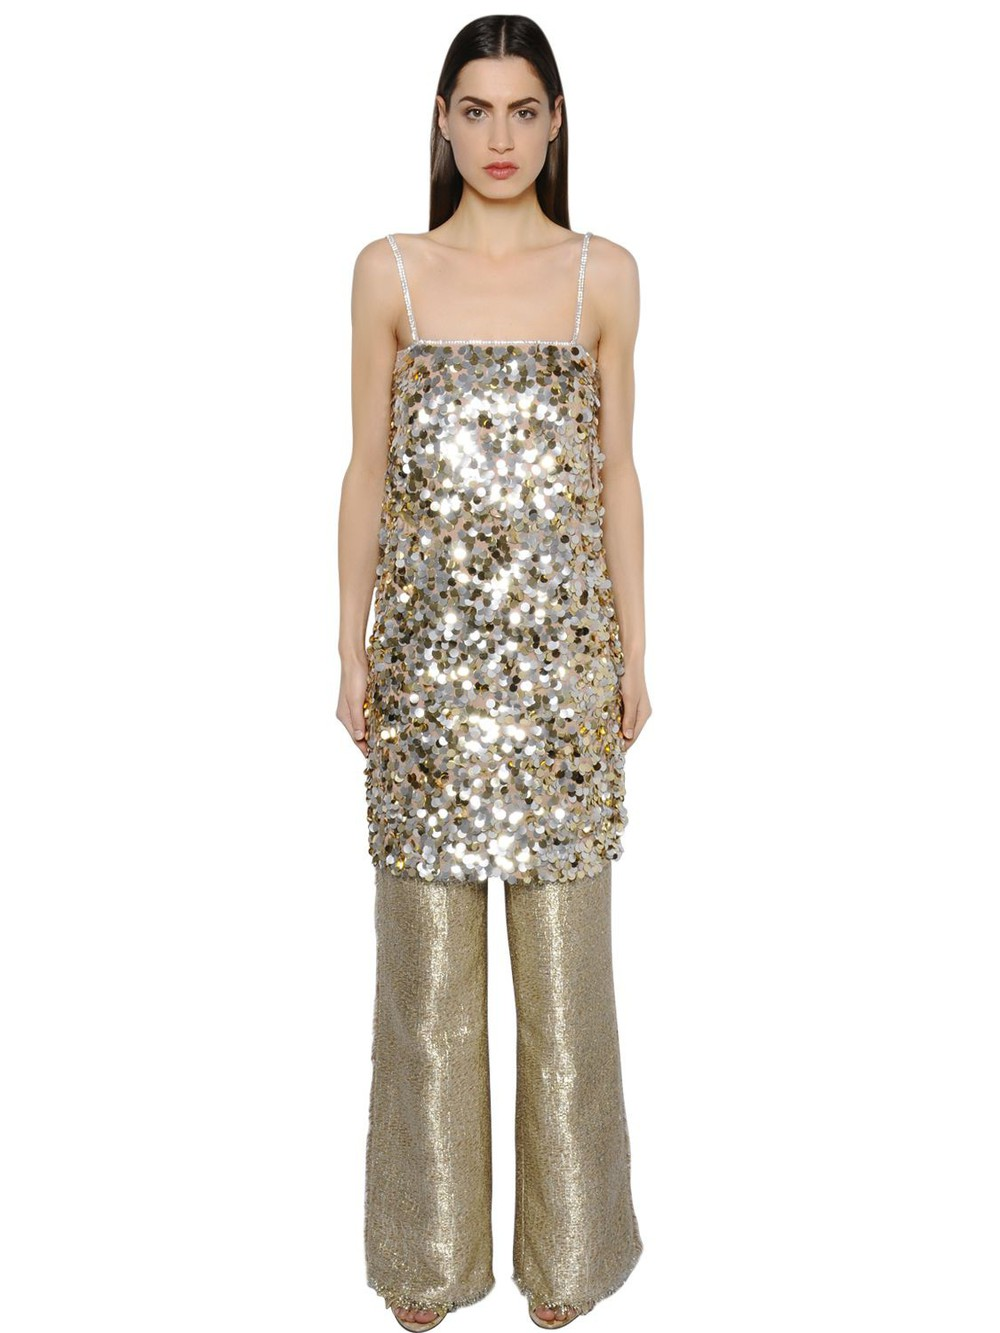 GIANLUCA CAPANNOLO Sequined Crepe Tunic Dress in gold / silver